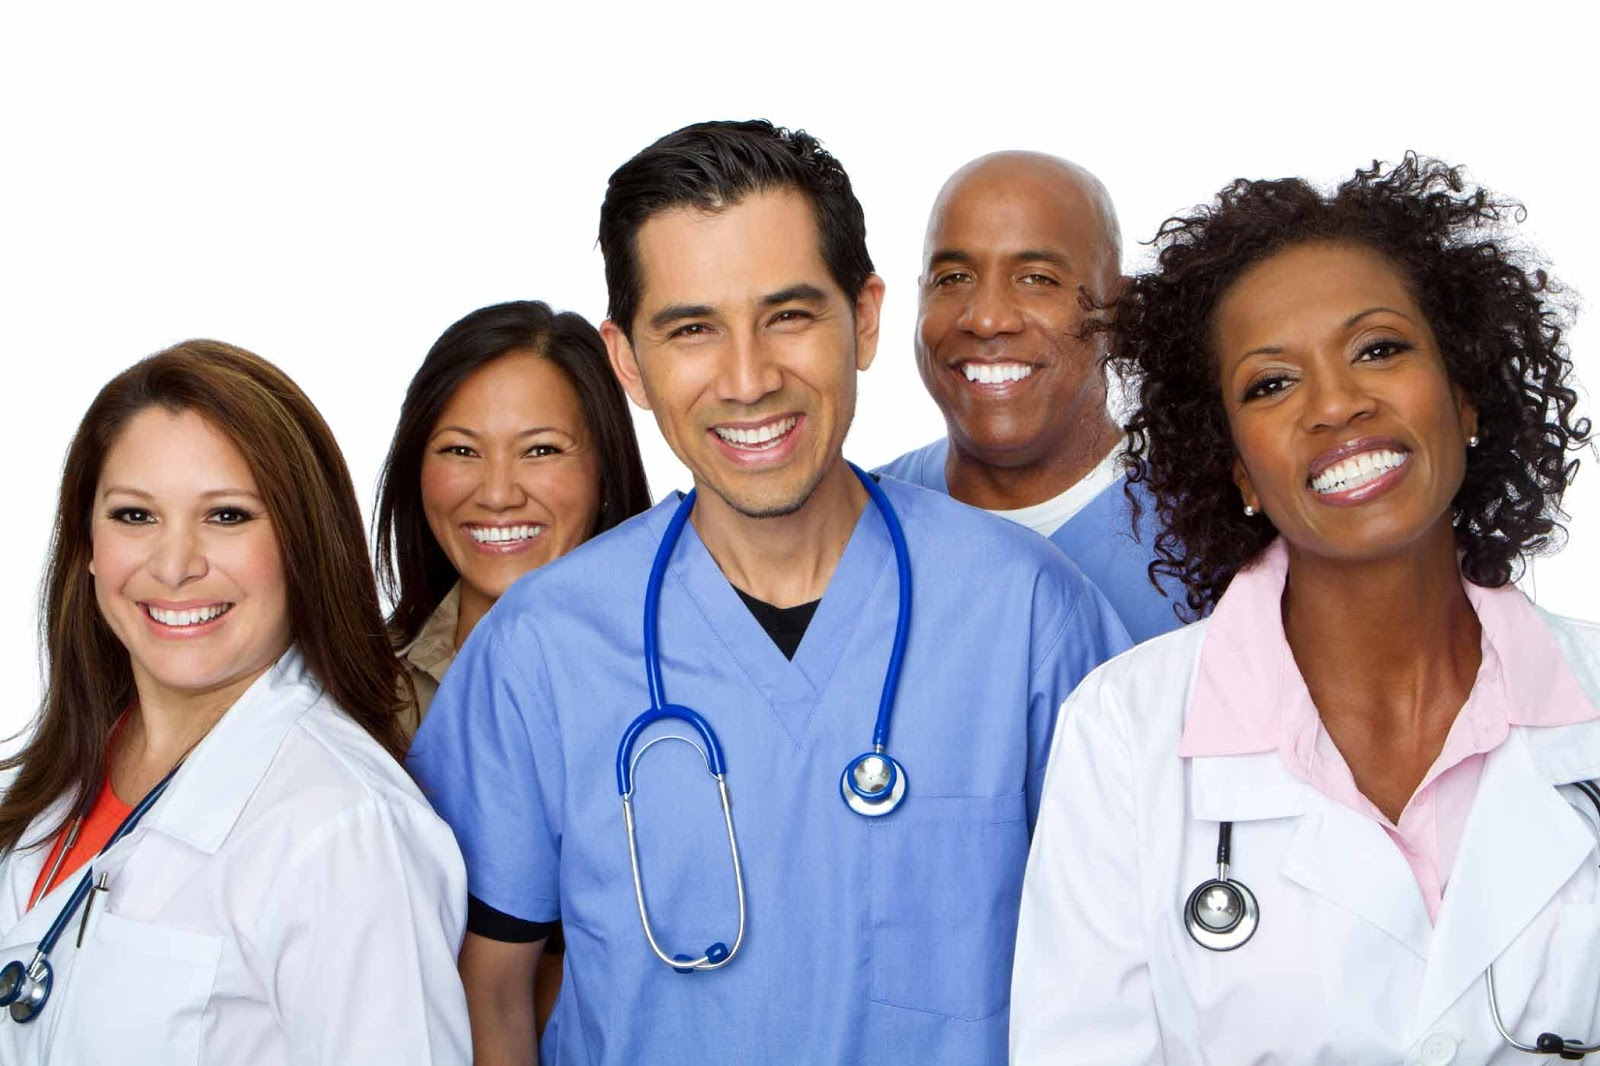 Should You Hire Temporary Health Care Professionals?